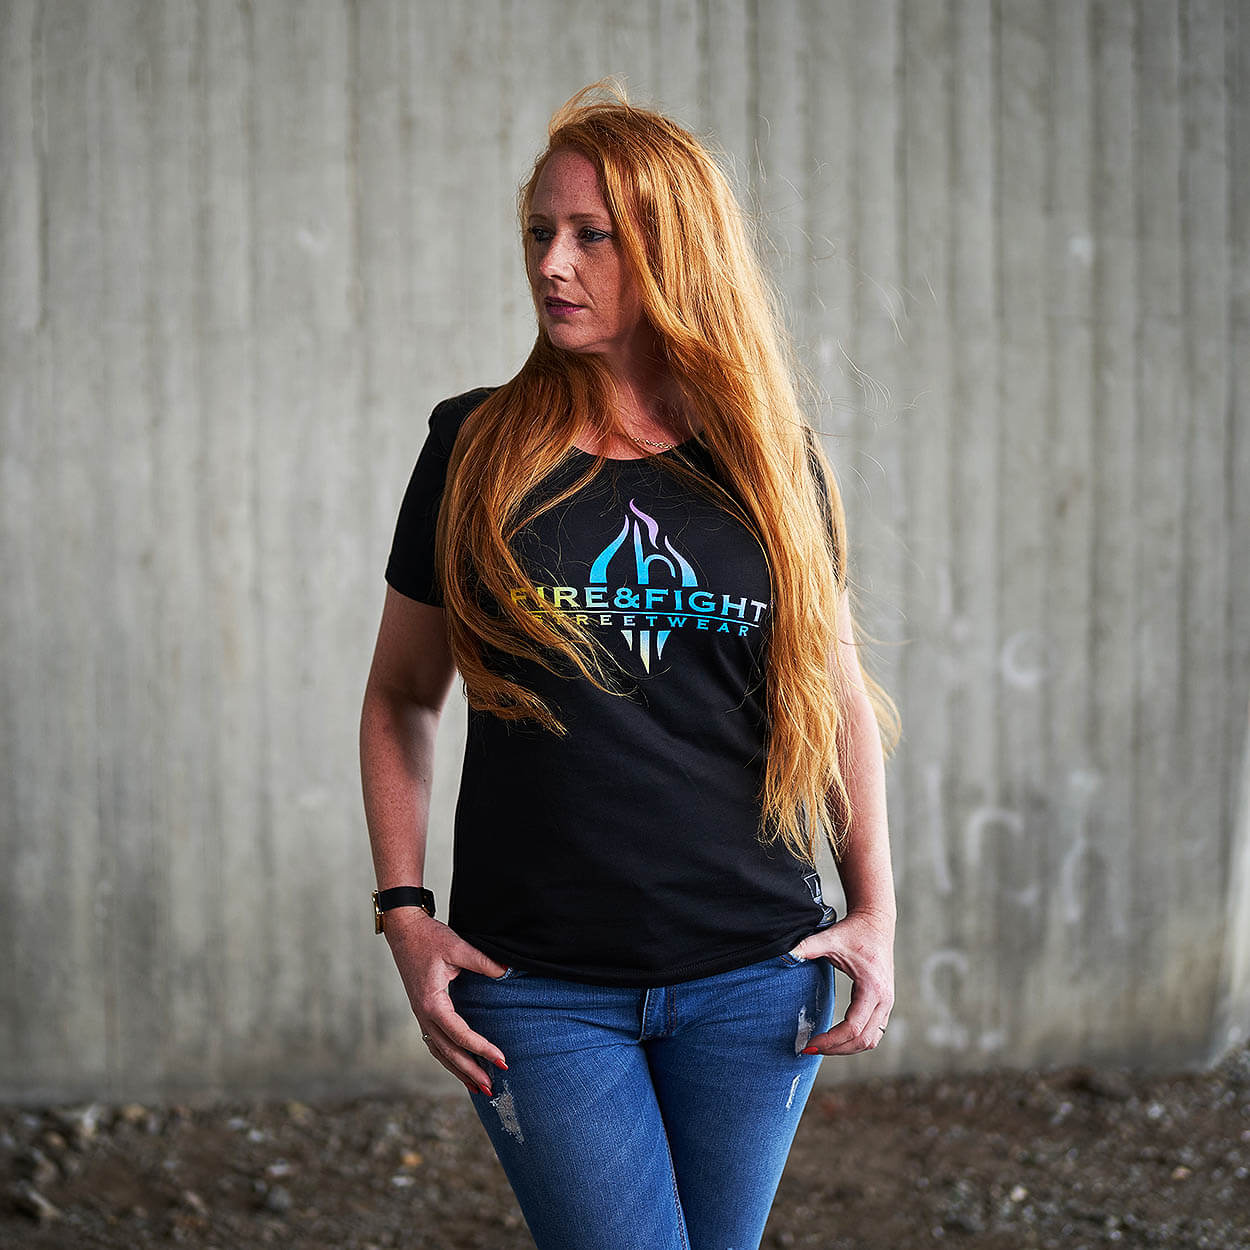 FIRE & FIGHT Streetwear® Logodesign Frauen T-Shirt